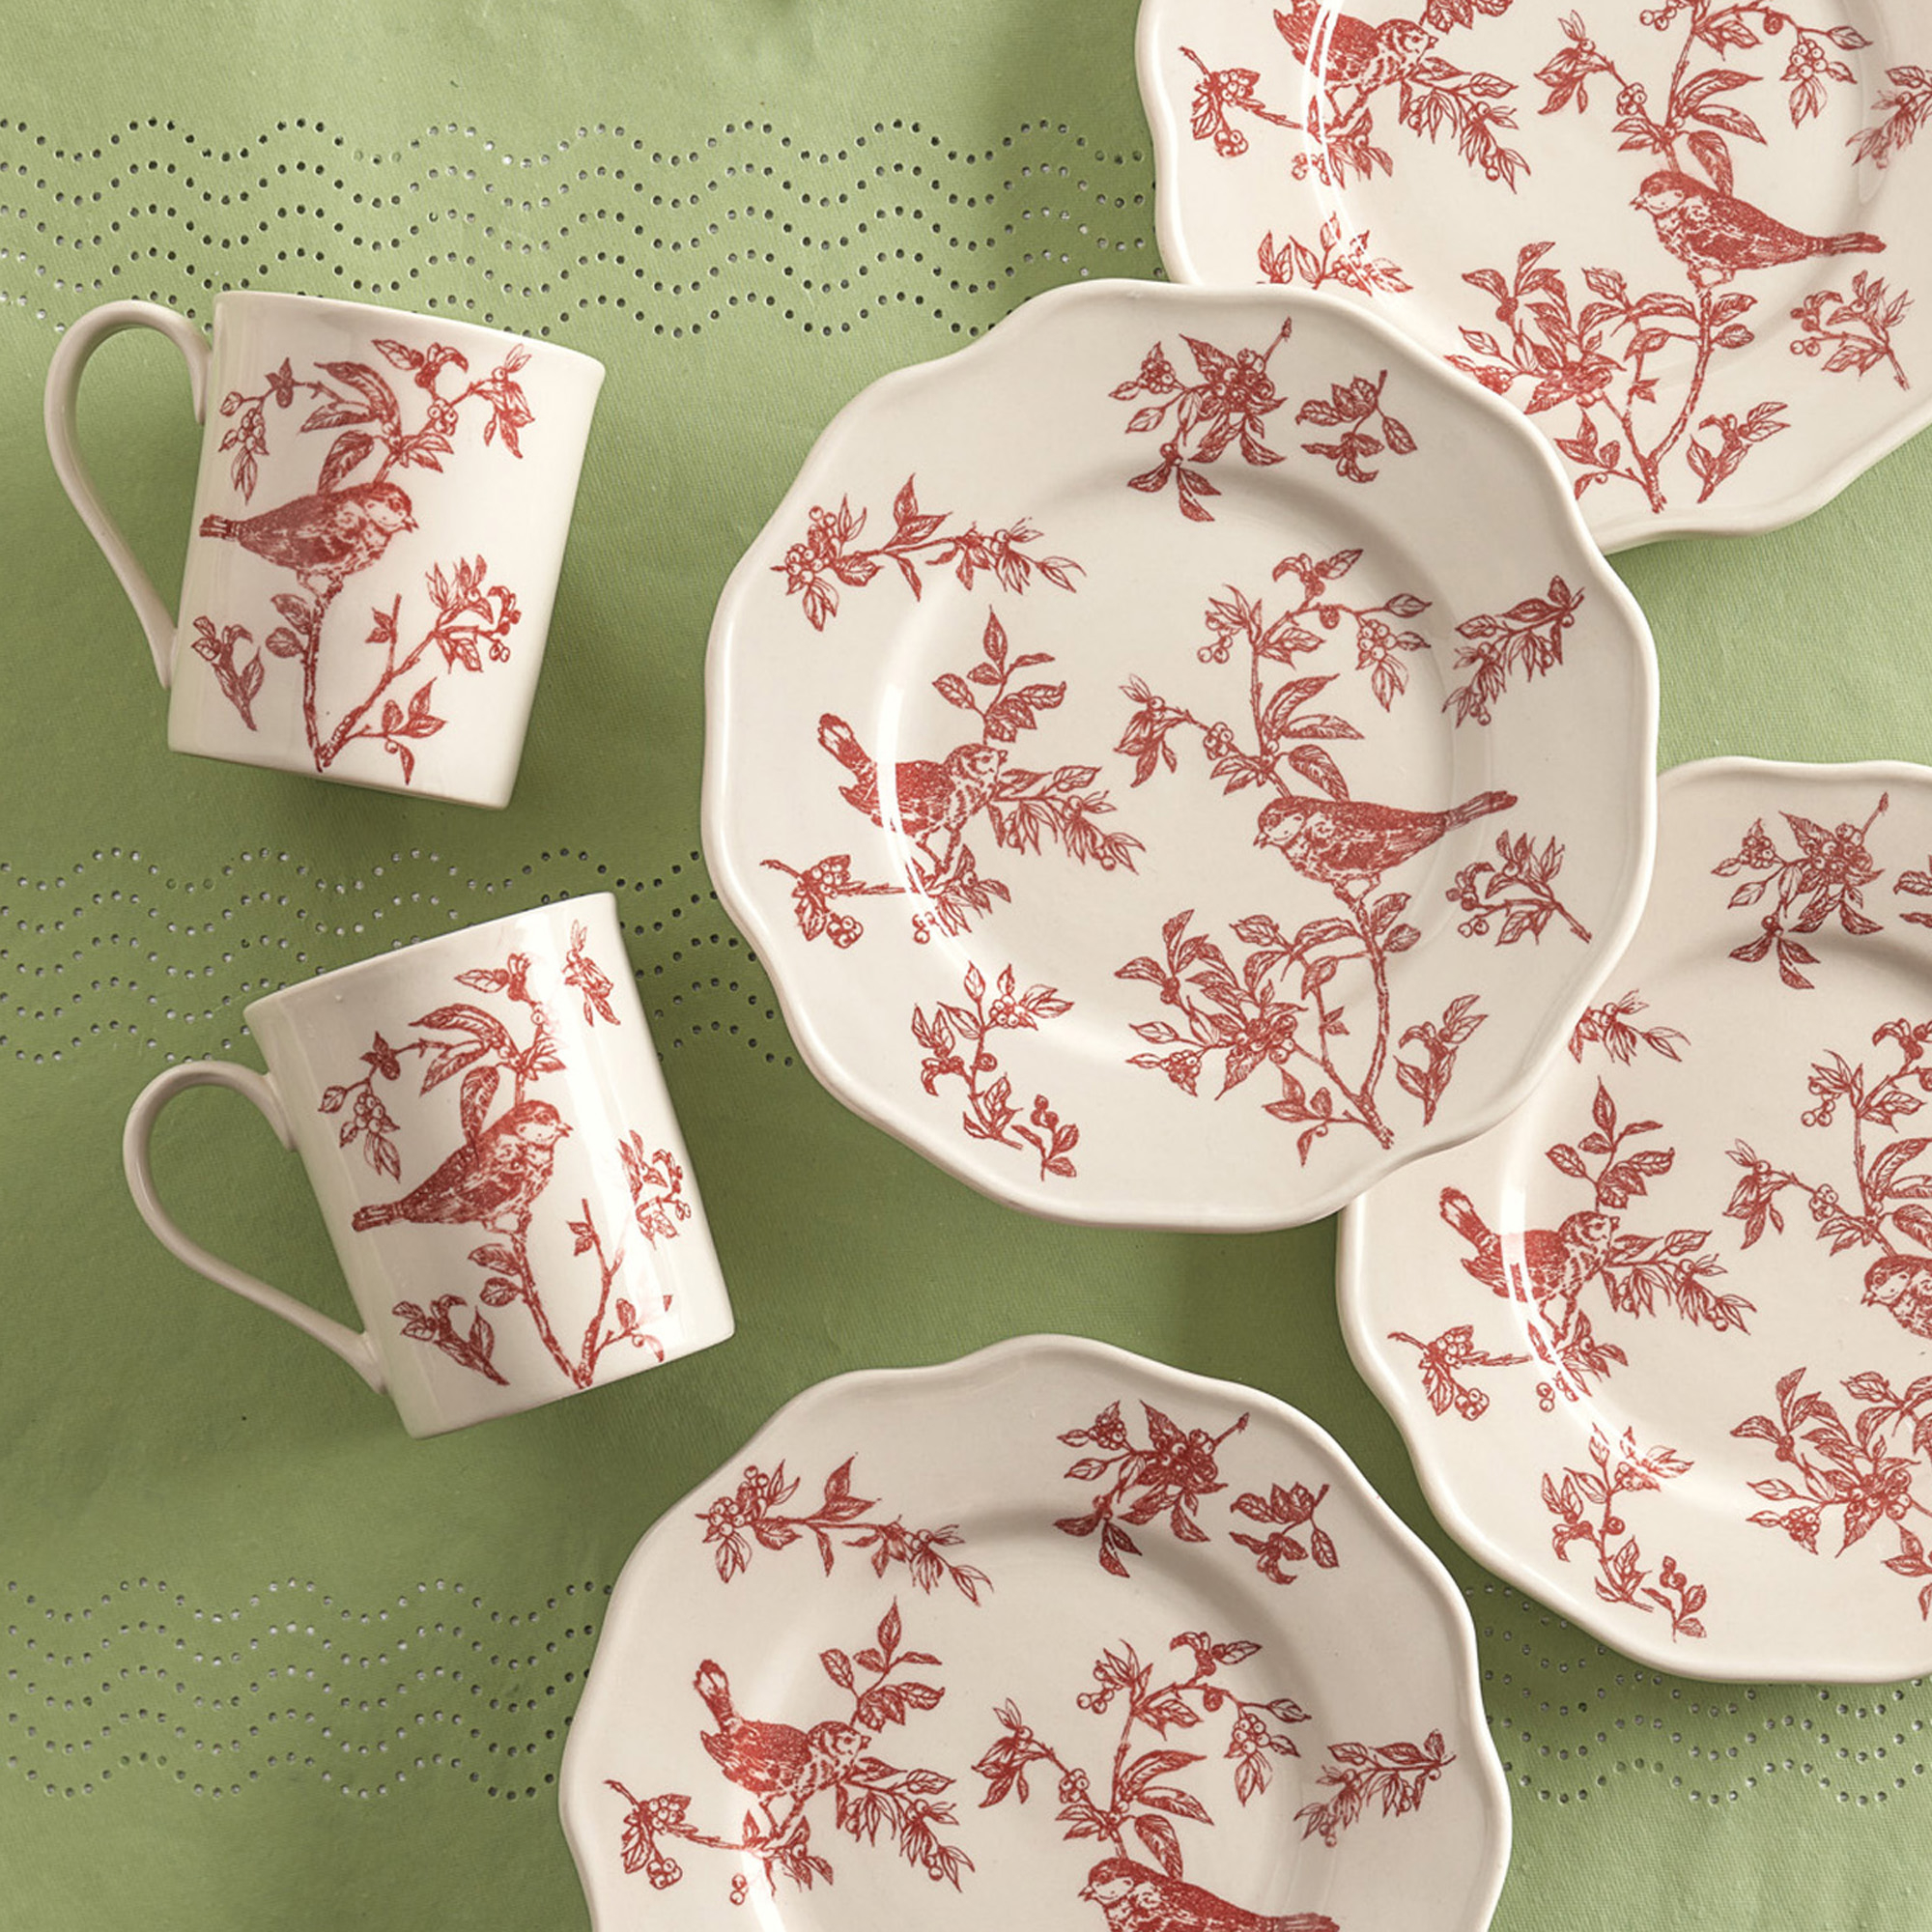 Red Toile Dessert Plates, Set of 4